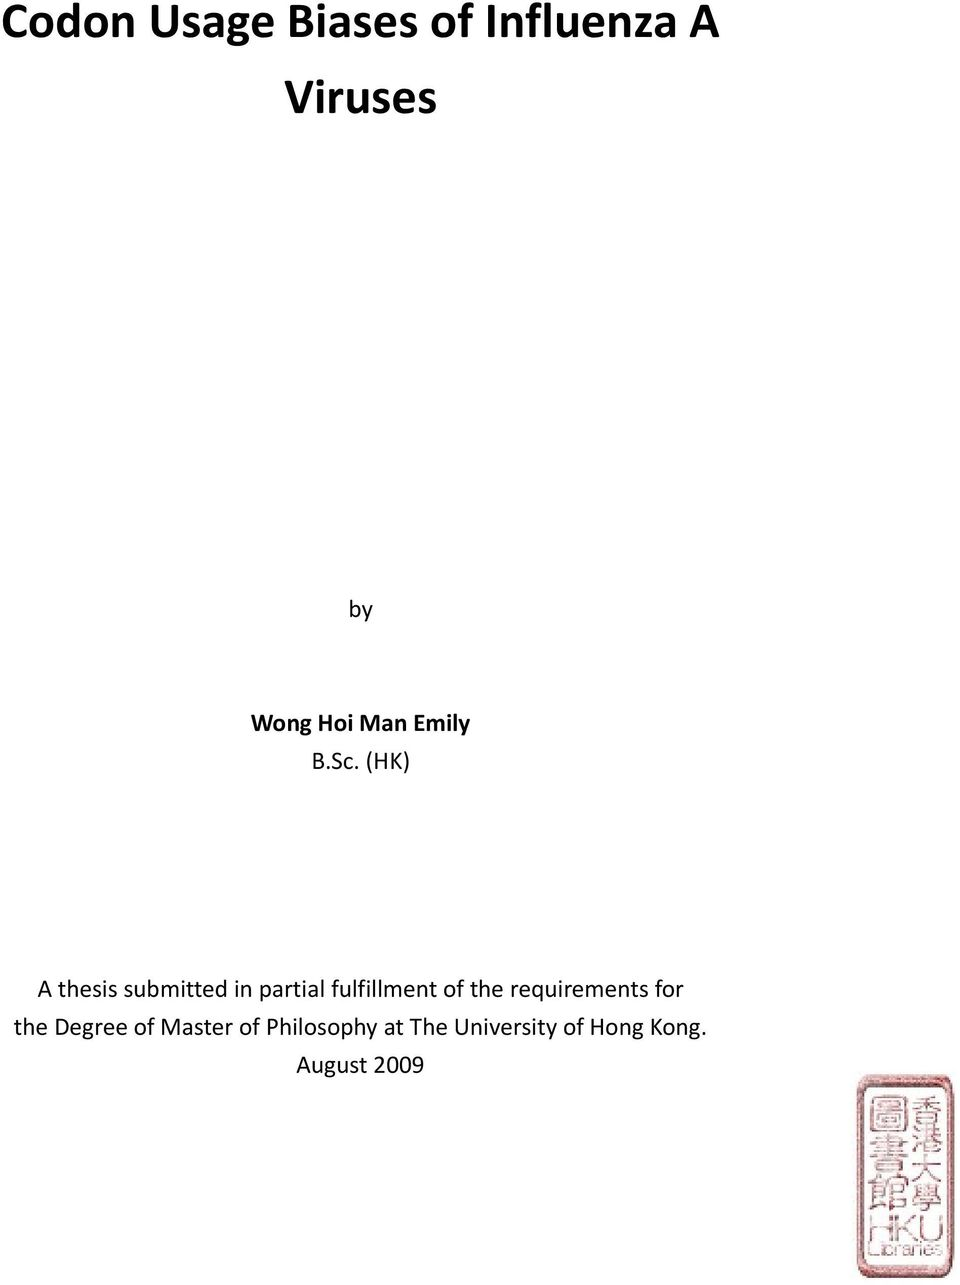 thesis submitted in partial fulfillment Rice university analysis on the assignment landscape of 3-sat problems by xiaoxu wang a thesis submitted in partial fulfillment of the requirements for the degree.